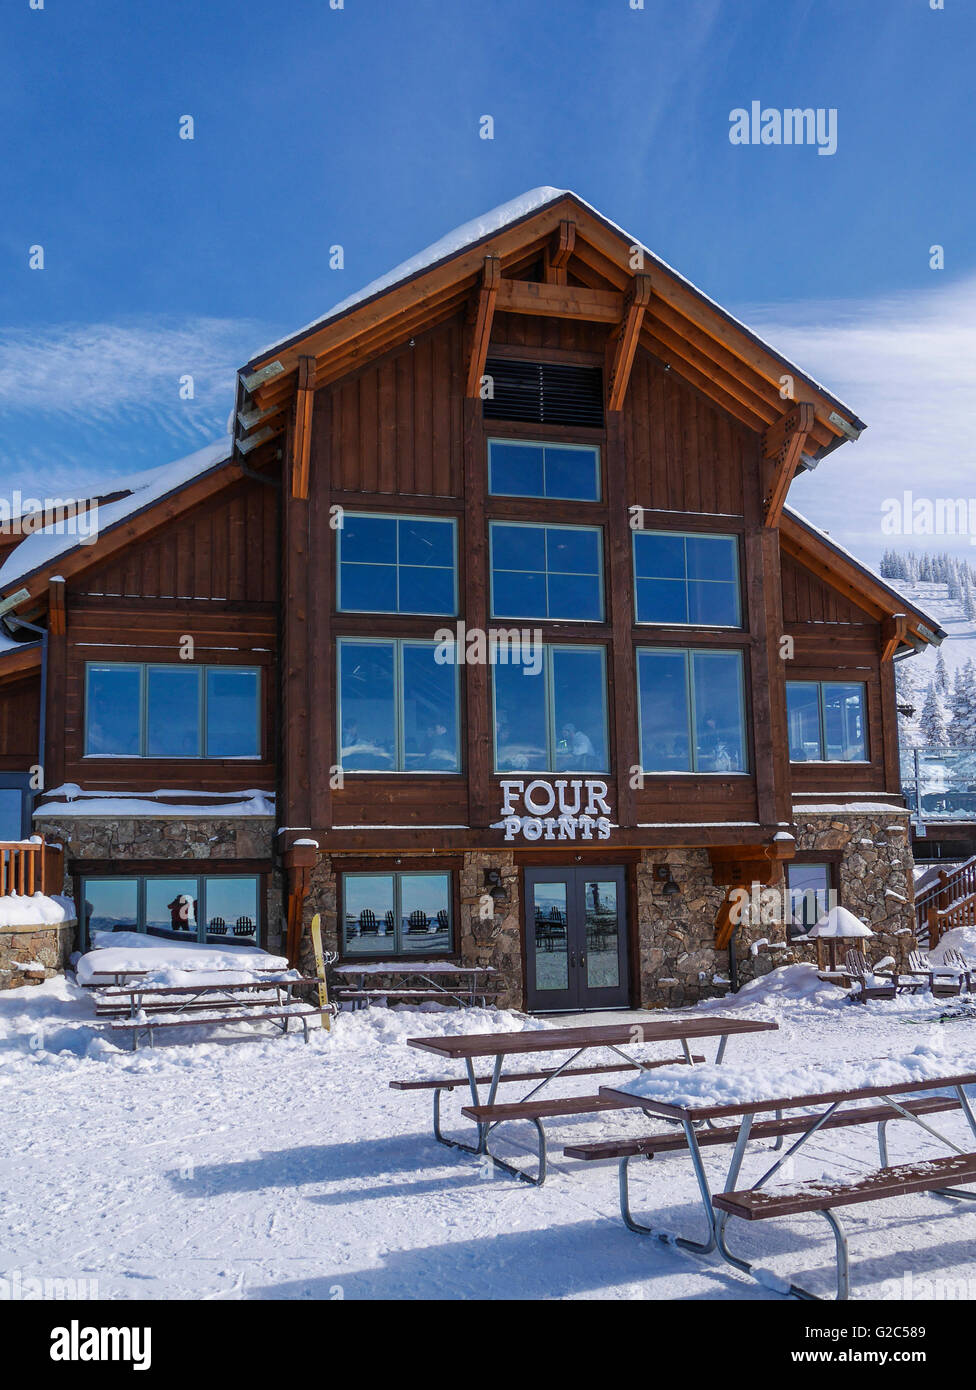 View of Four Points Lodge, Steamboat ski area, Steamboat Springs Colorado. - Stock Image